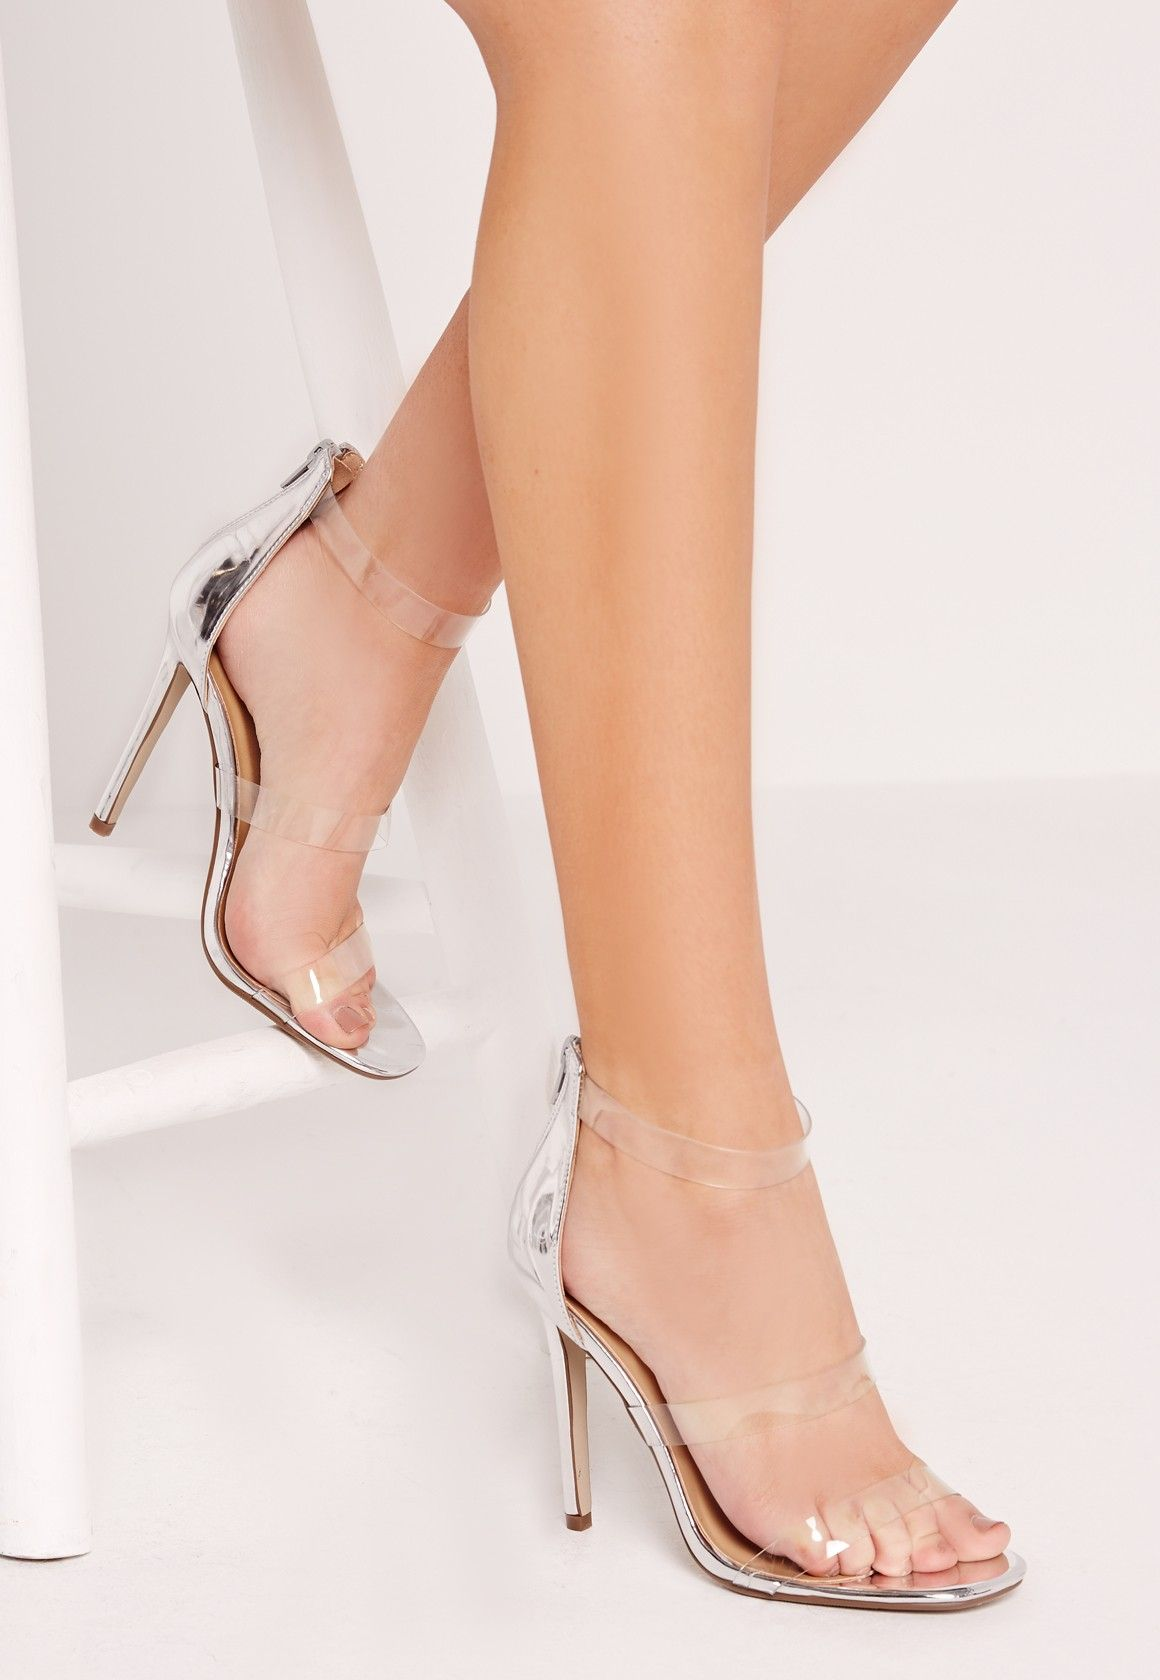 d2e5eca7dbb Missguided - Perspex 3 Strap Barely There Heeled Sandals Silver ...